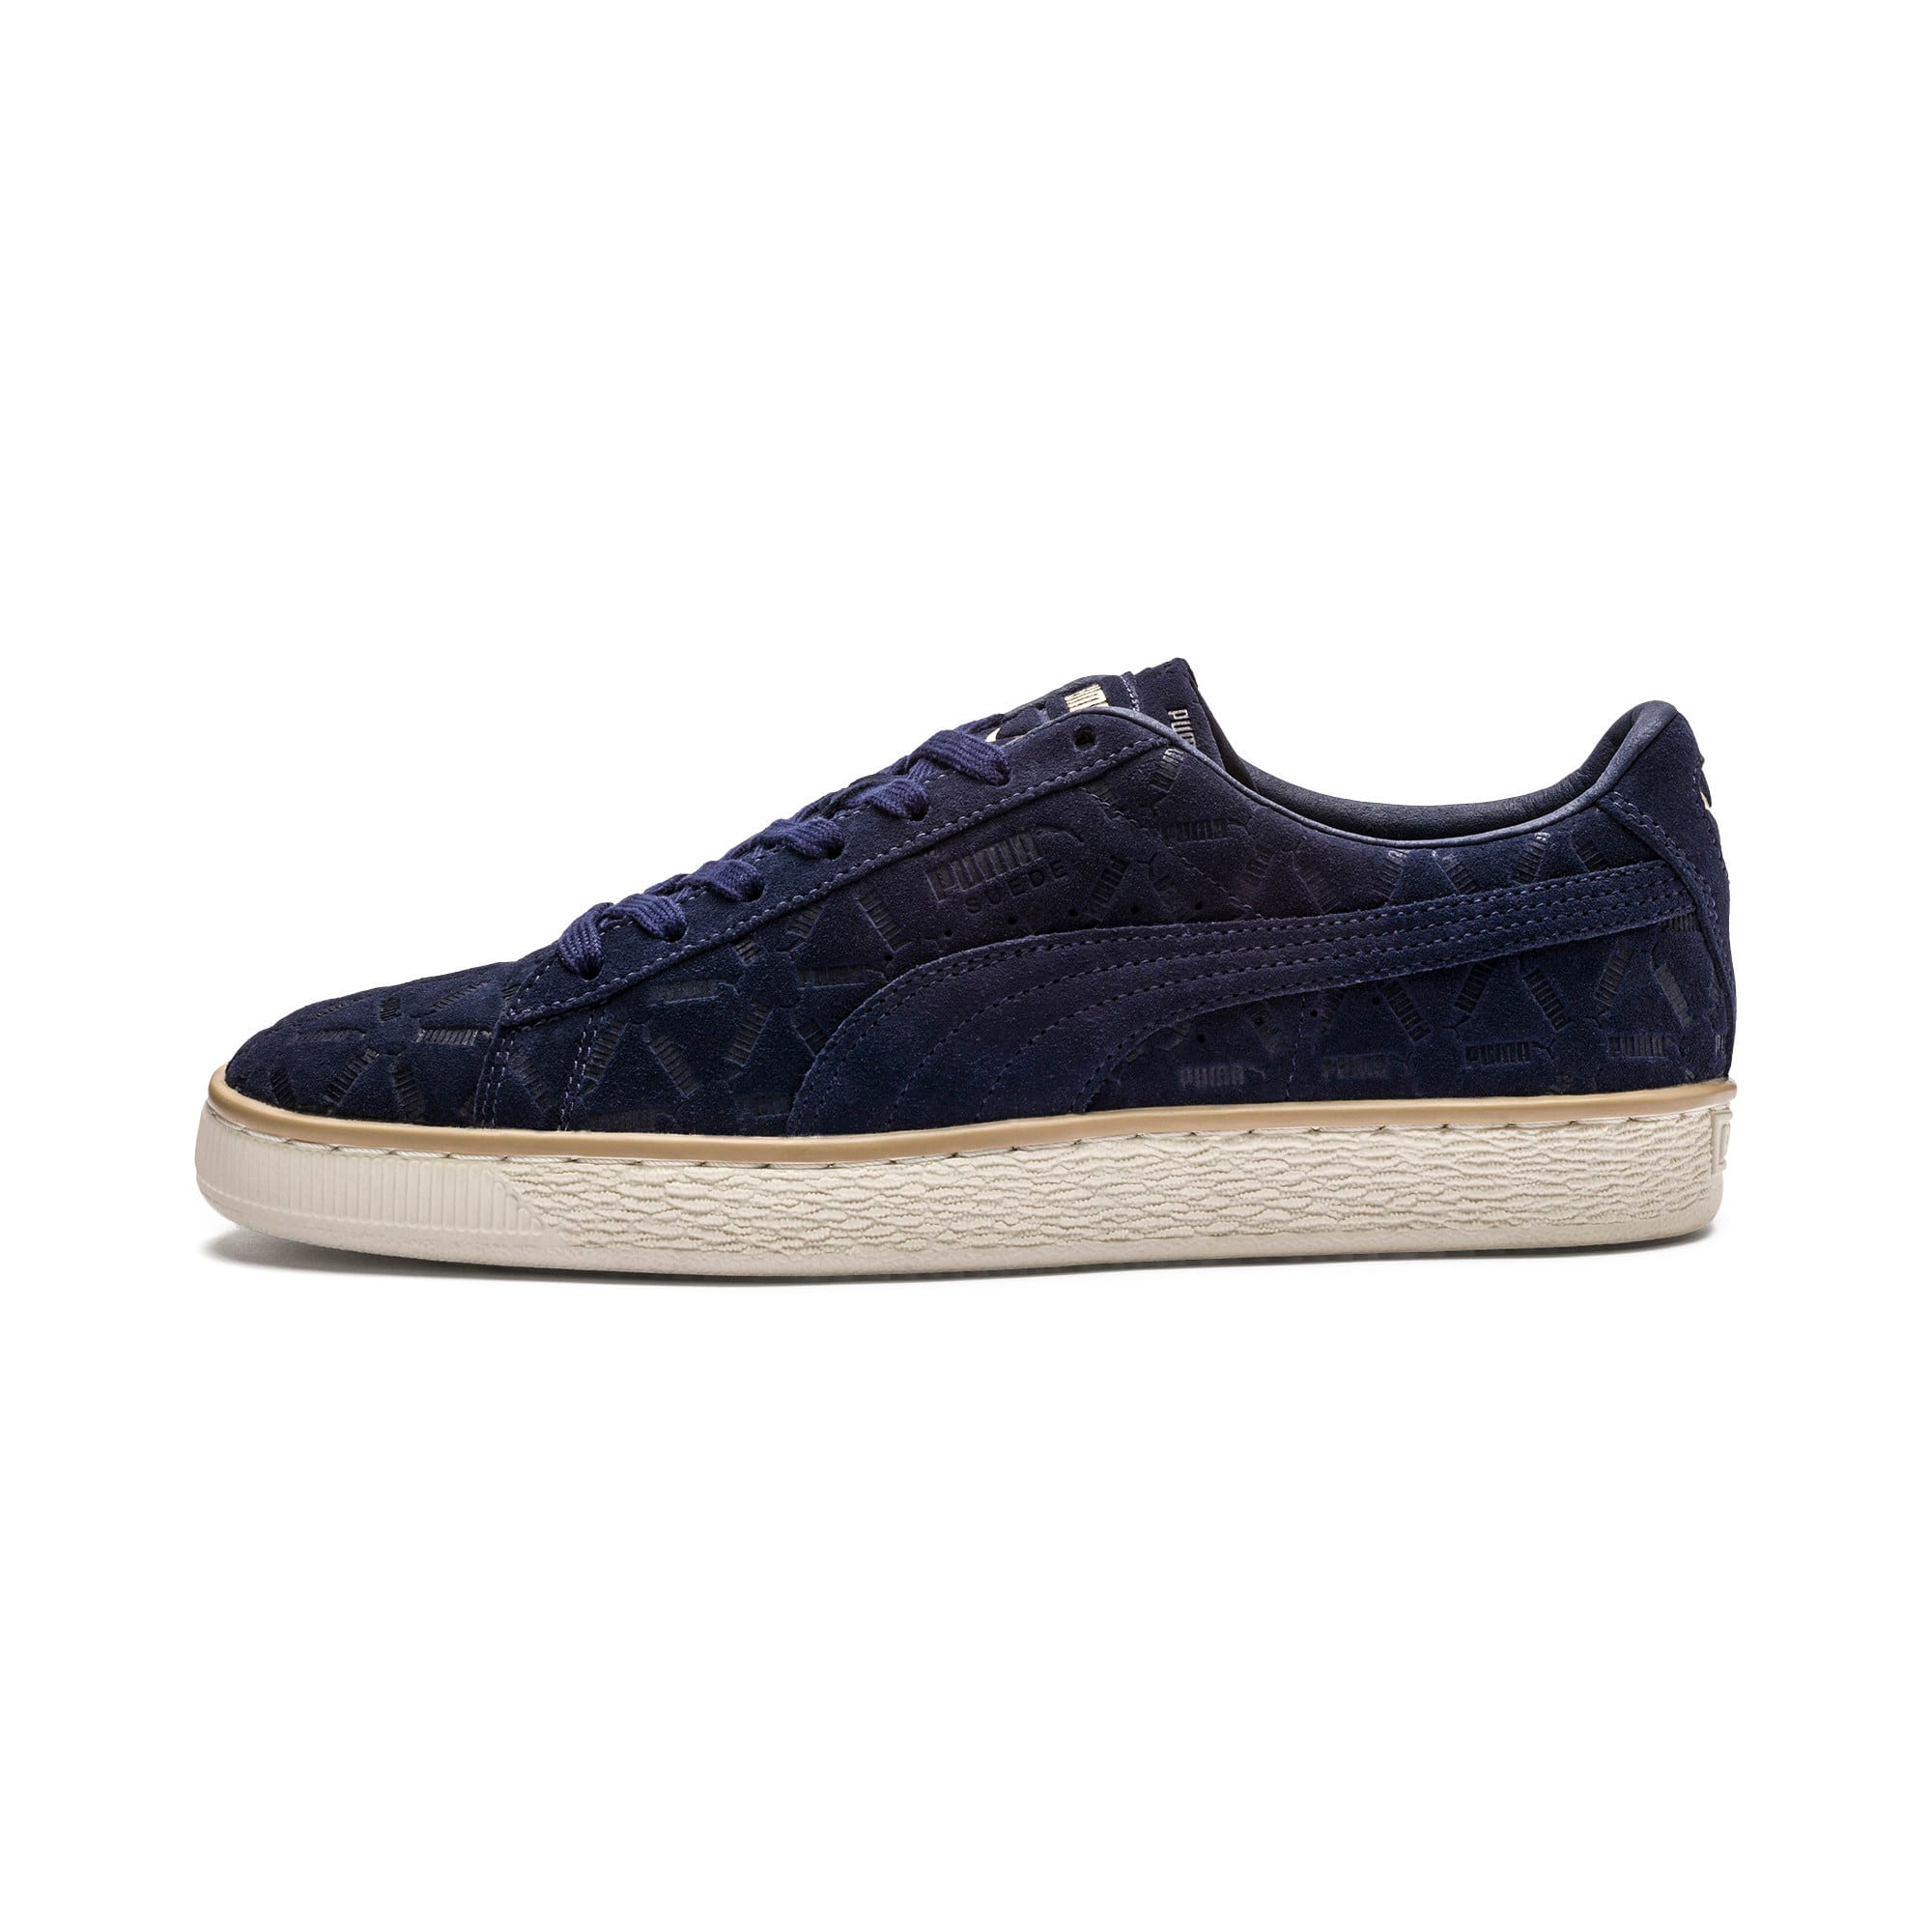 Thumbnail 1 of Suede Classic Lux Sneakers, Peacoat-Pebble-Whisper White, medium